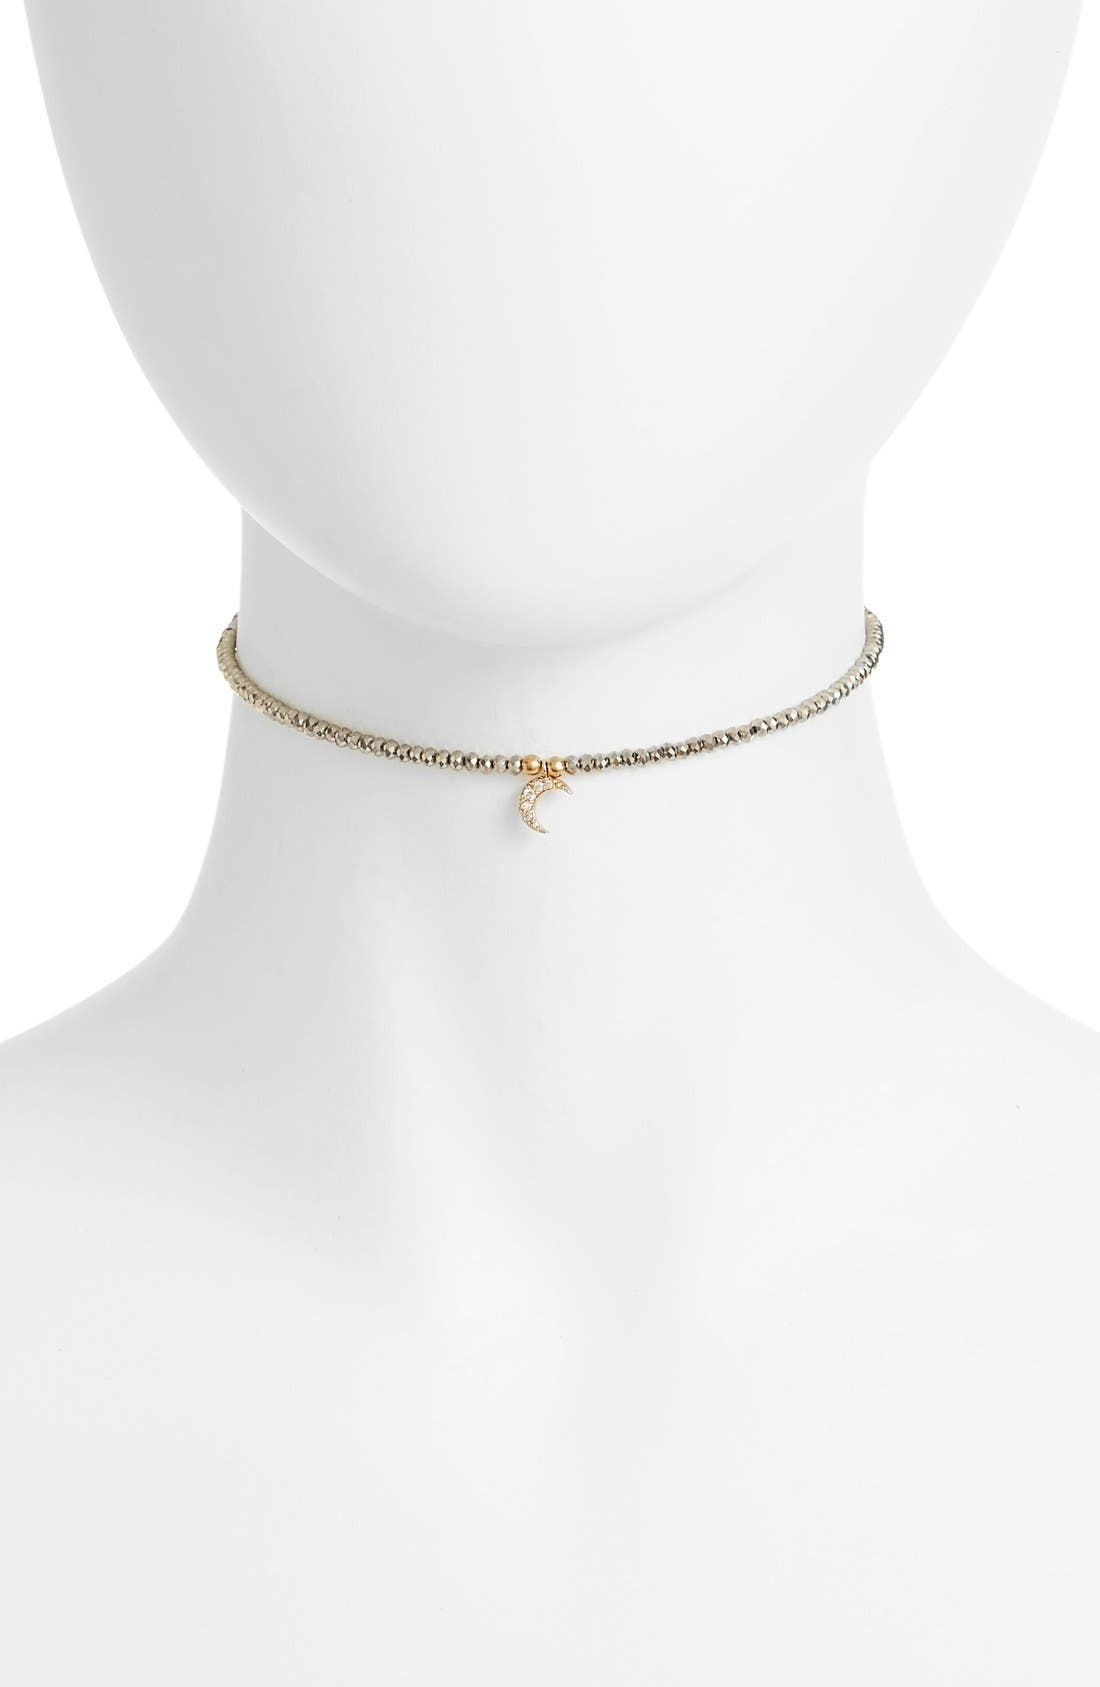 Jules Smith Selene Choker